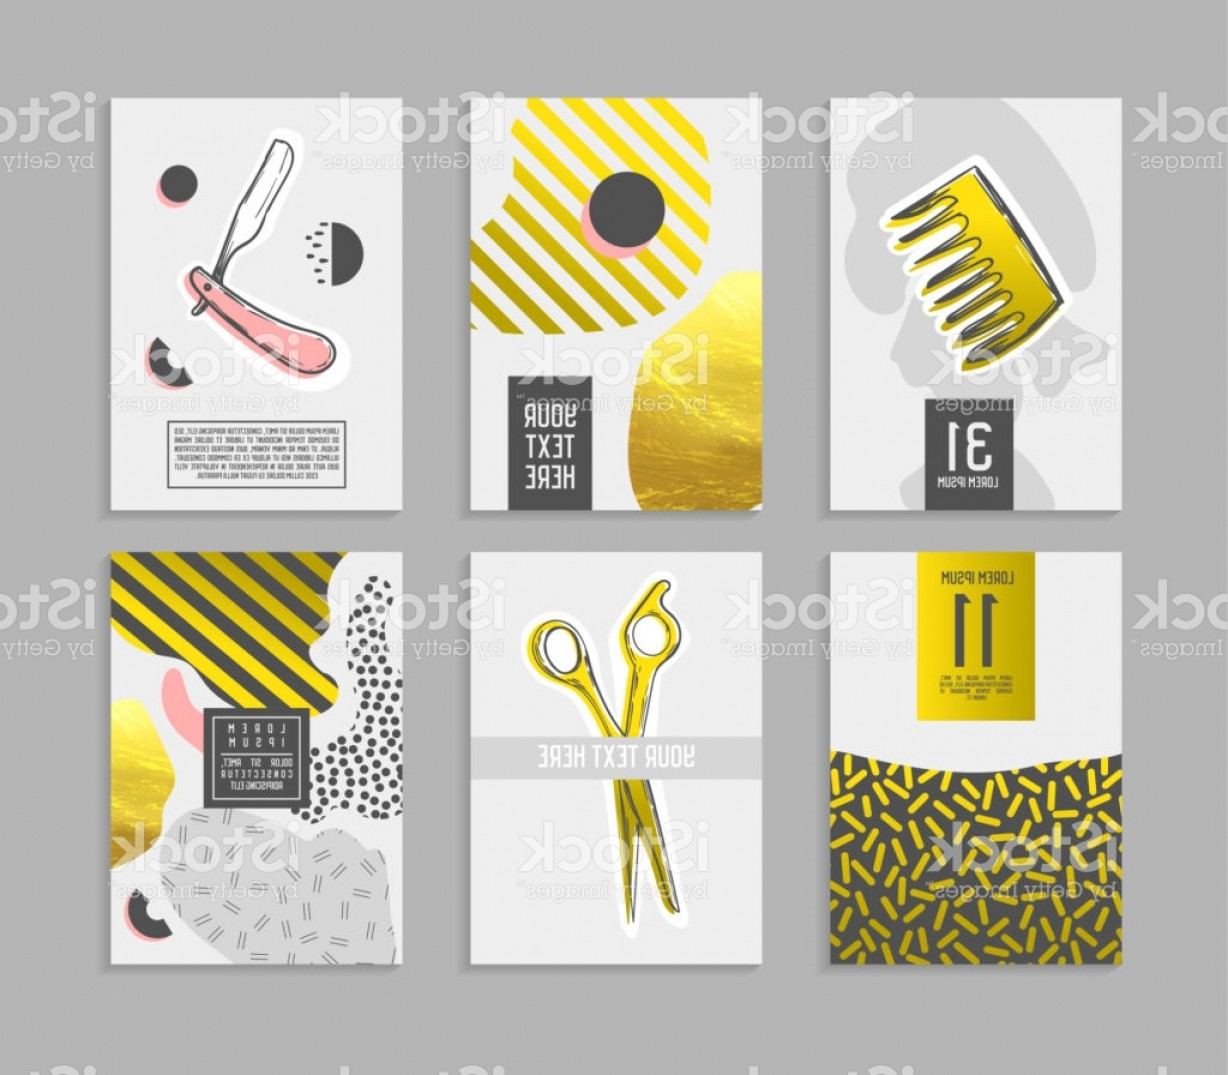 Golden Barber Vector: Barber Shop Abstract Posters Set With Golden Glitter Elements Hipster Style Covers Gm